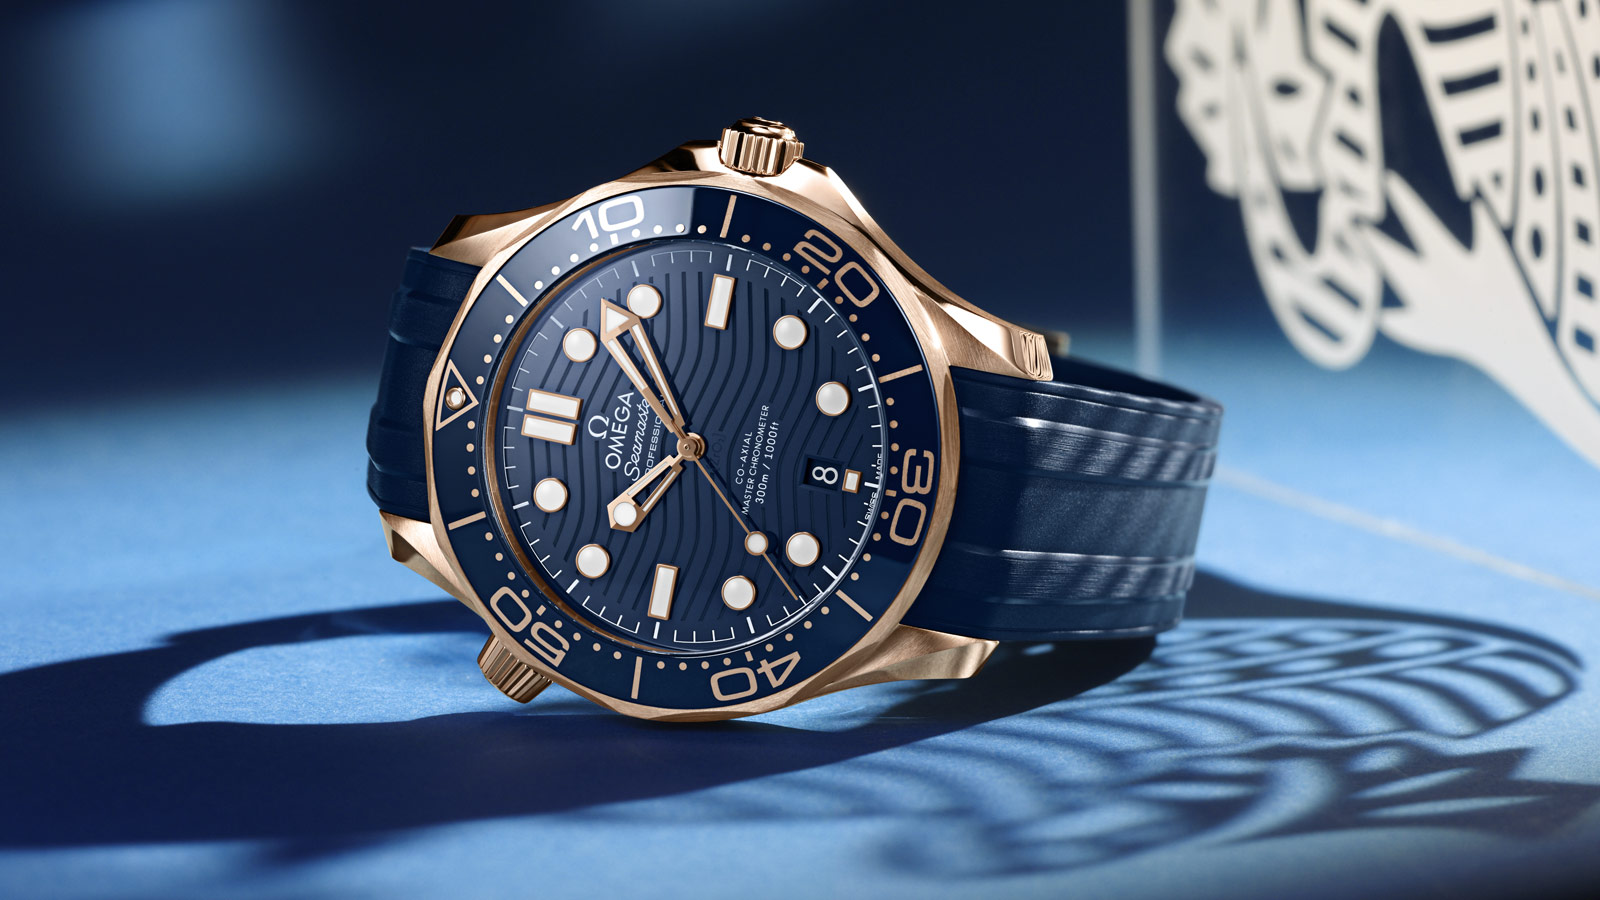 Seamaster Diver 300 M Diver 300M Omega Co‑Axial Master Chronometer 42 mm Montre - 210.62.42.20.03.001